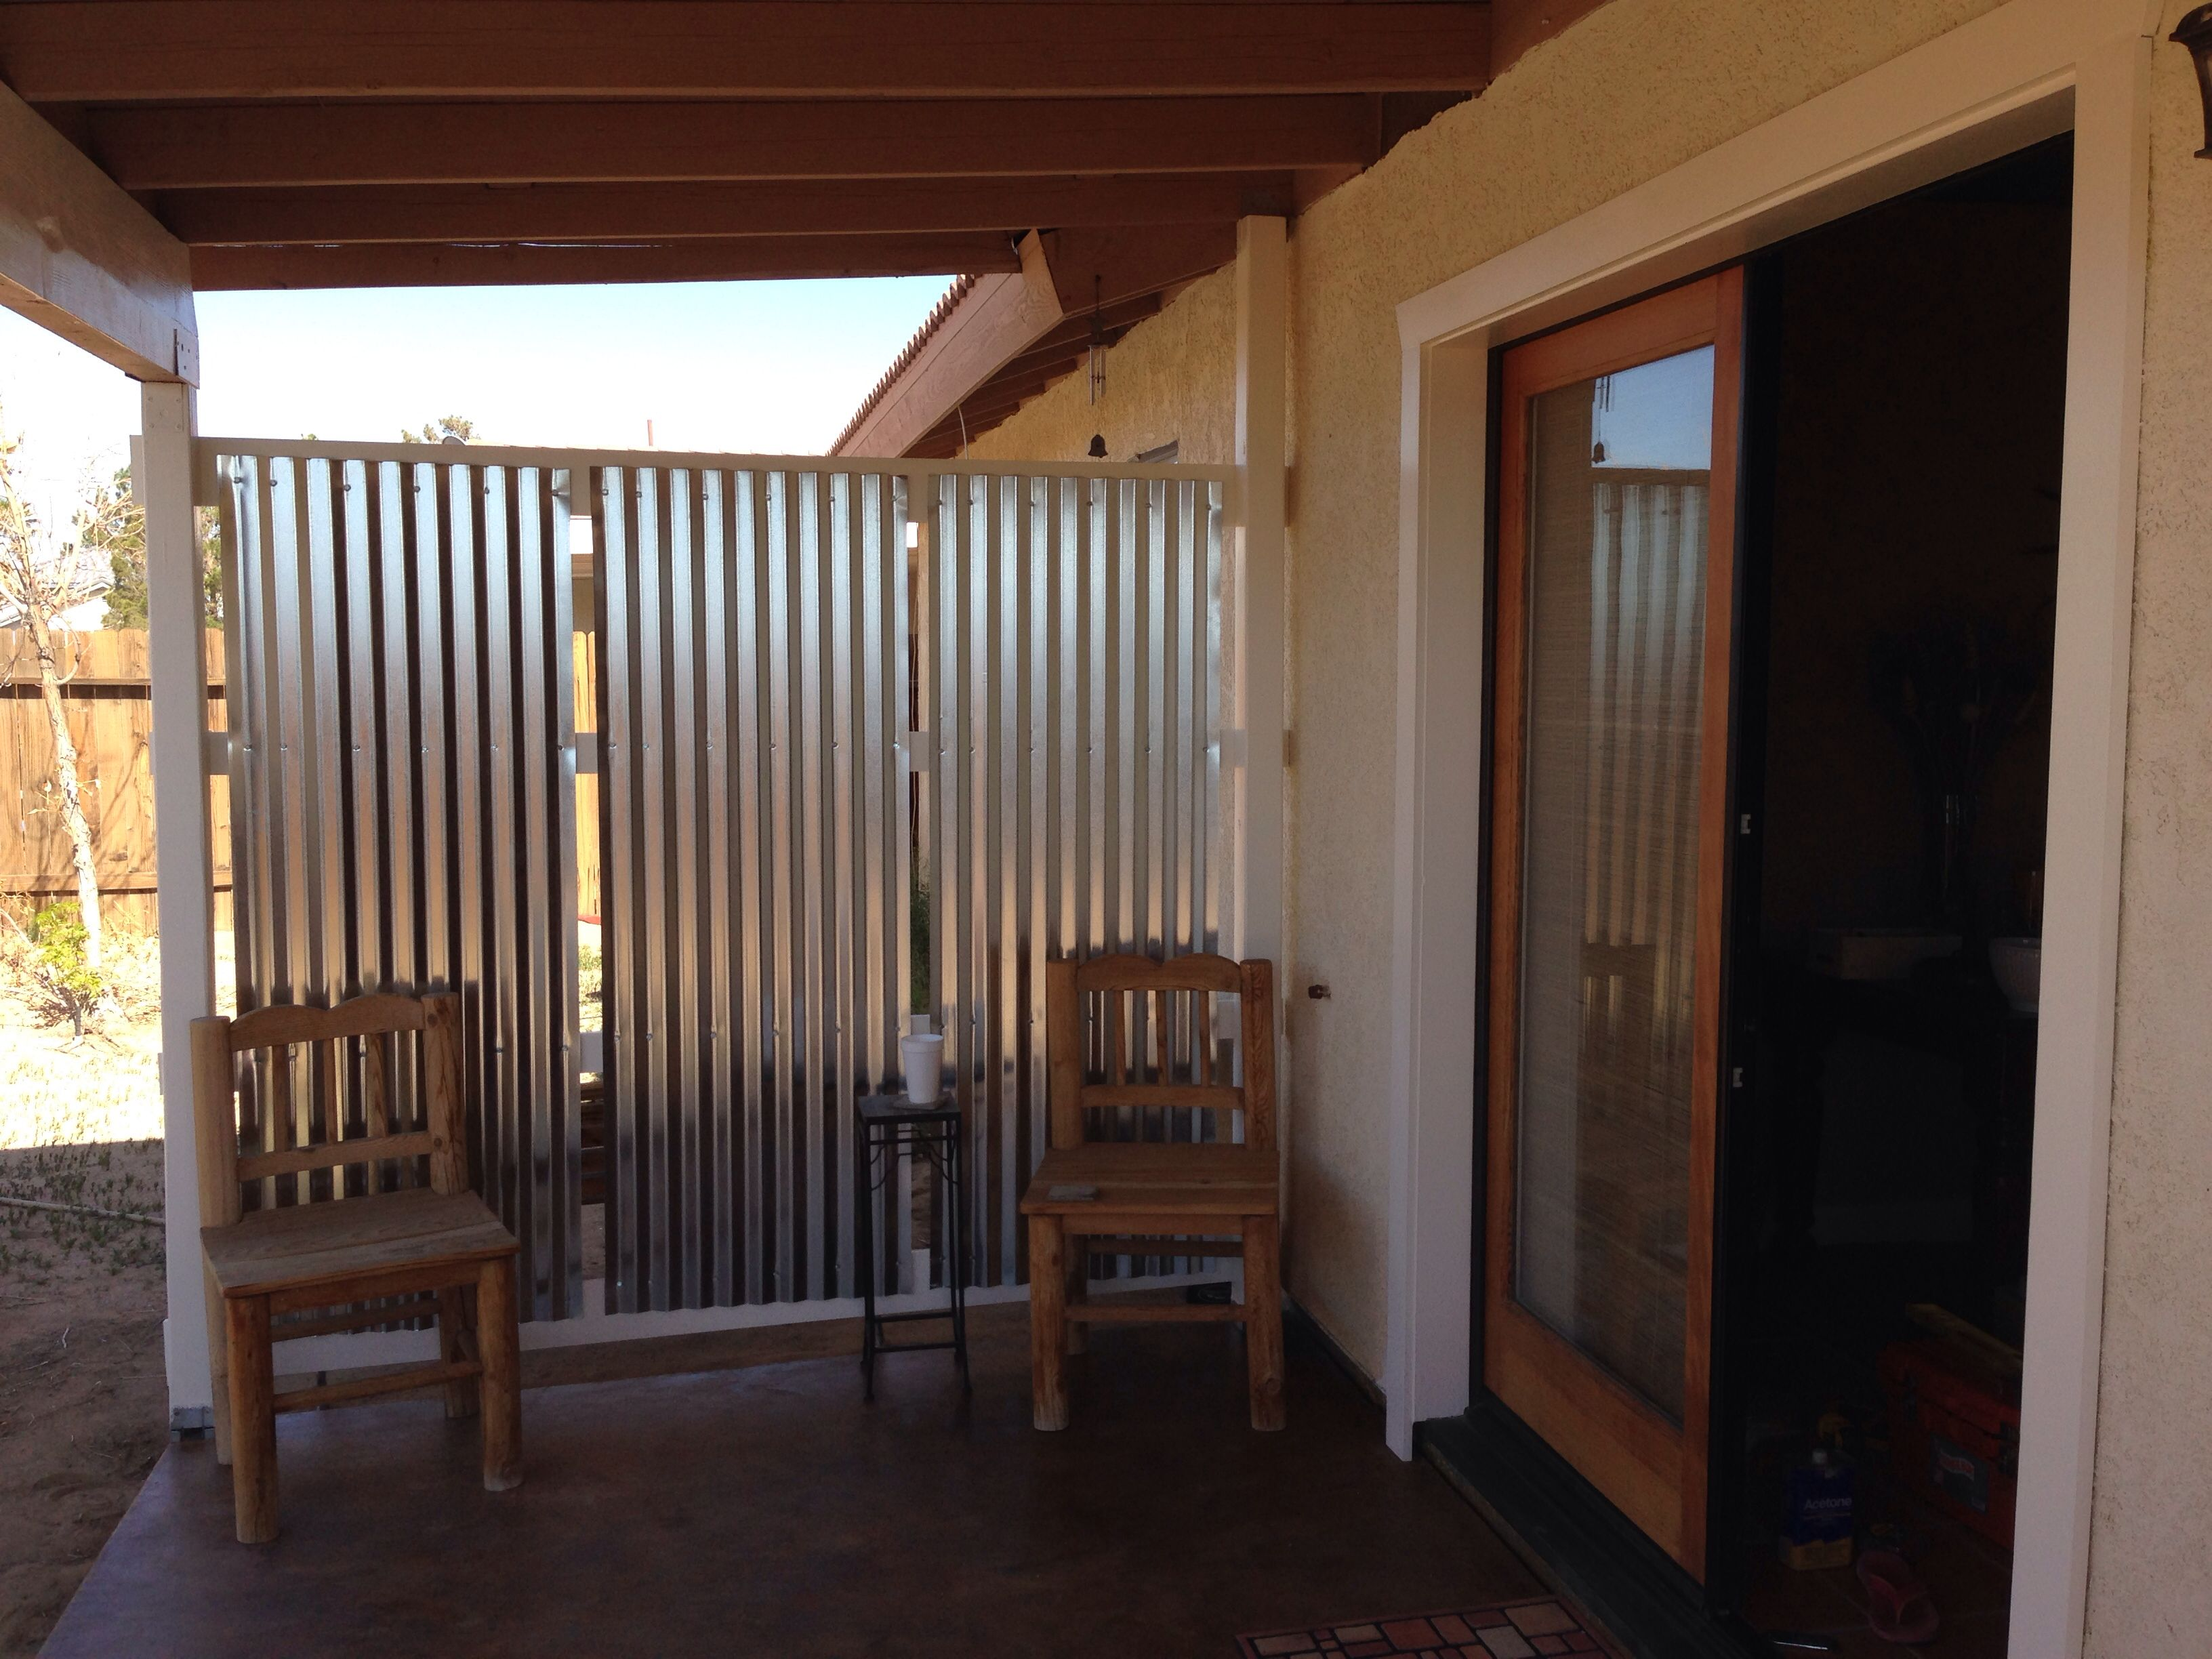 Metal Privacy Screen diy corrugated privacy screen and wind break | backyard outdoor